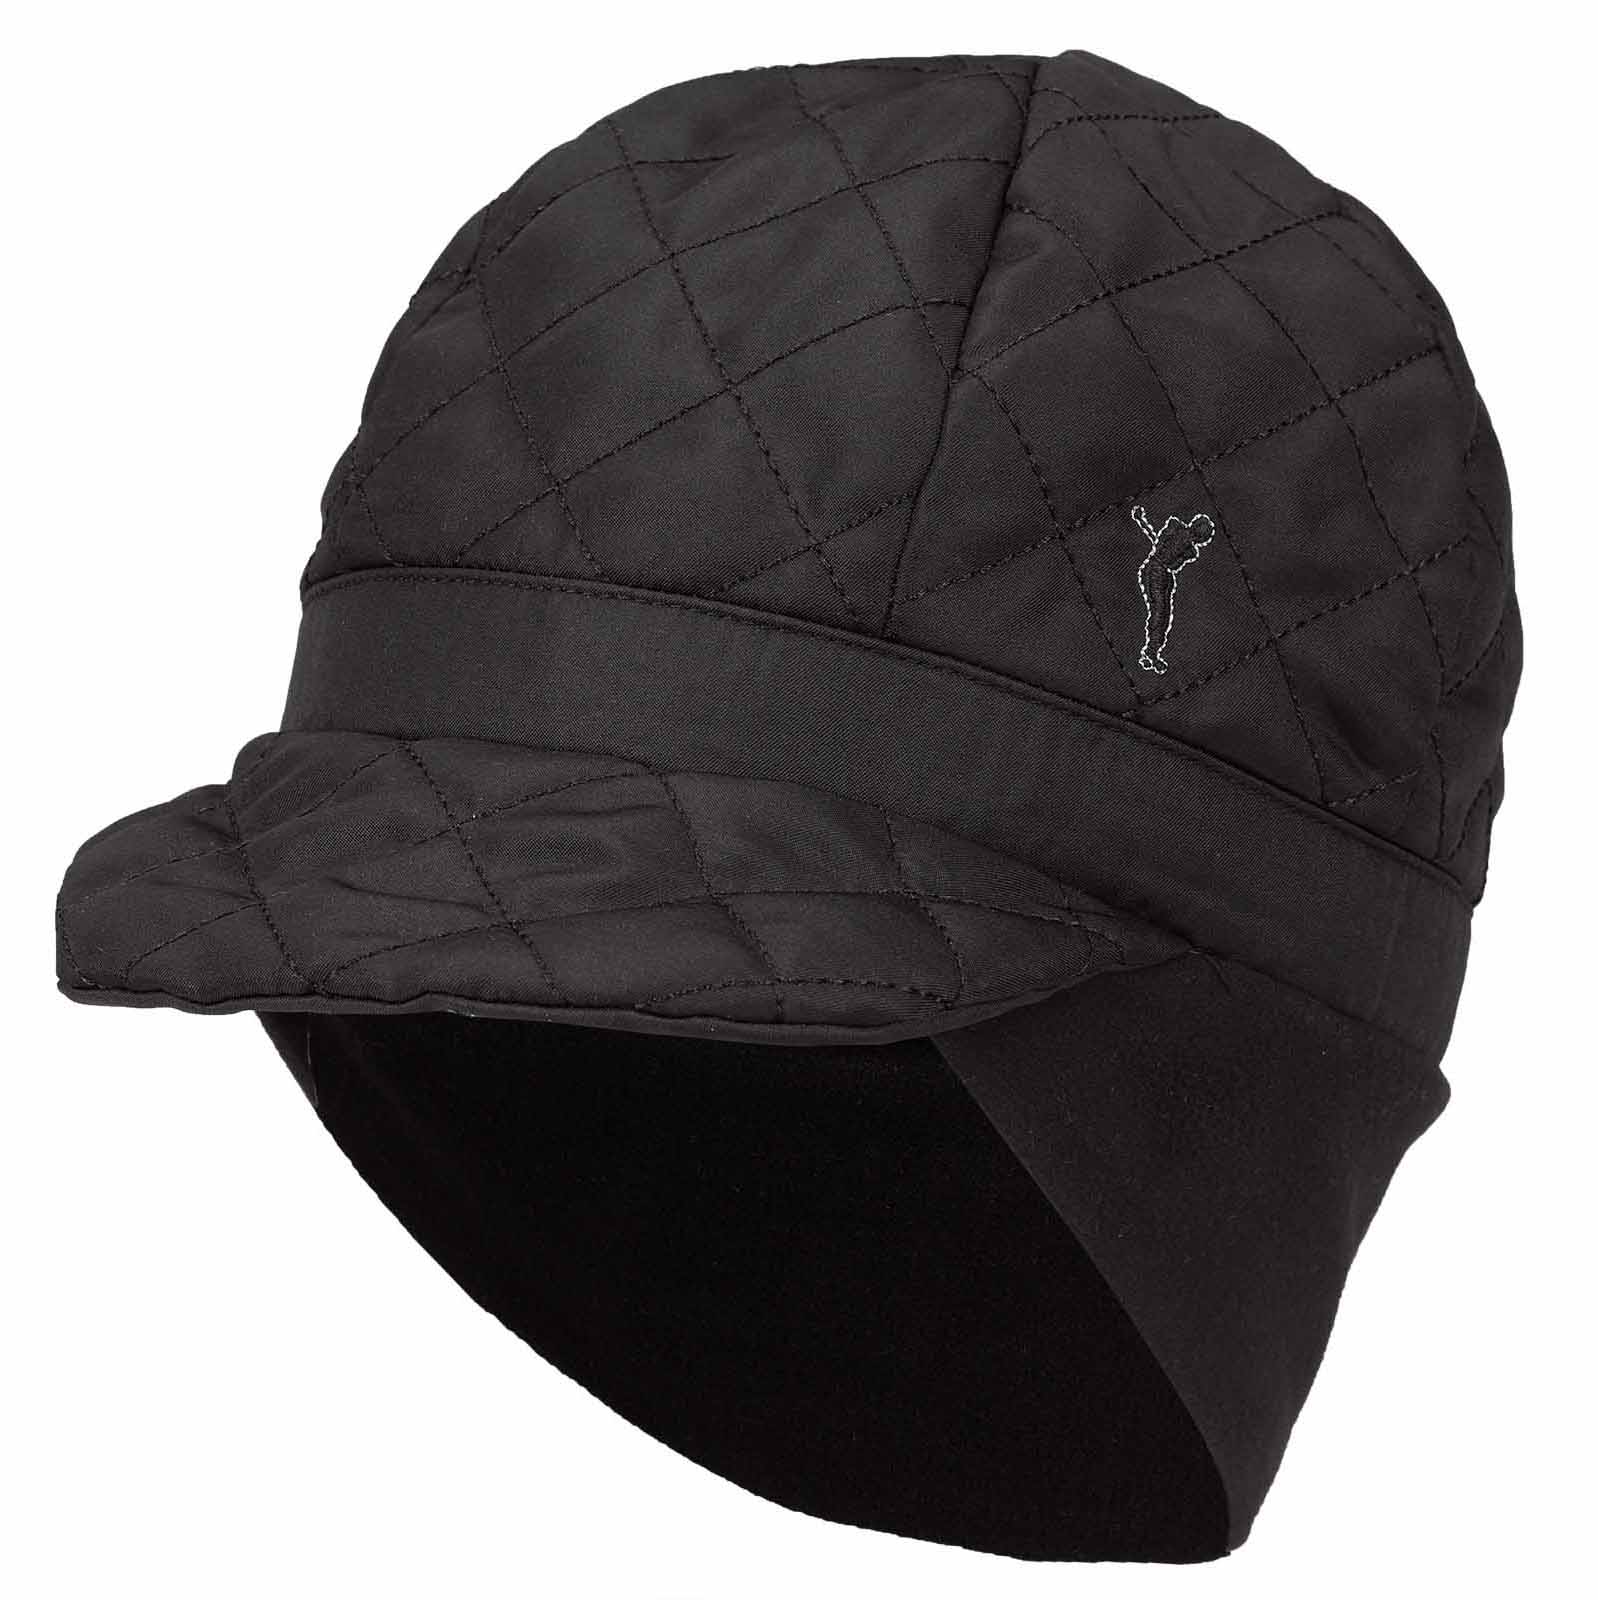 Warming Arctic Winter Ladies' golf hat with quilted pattern